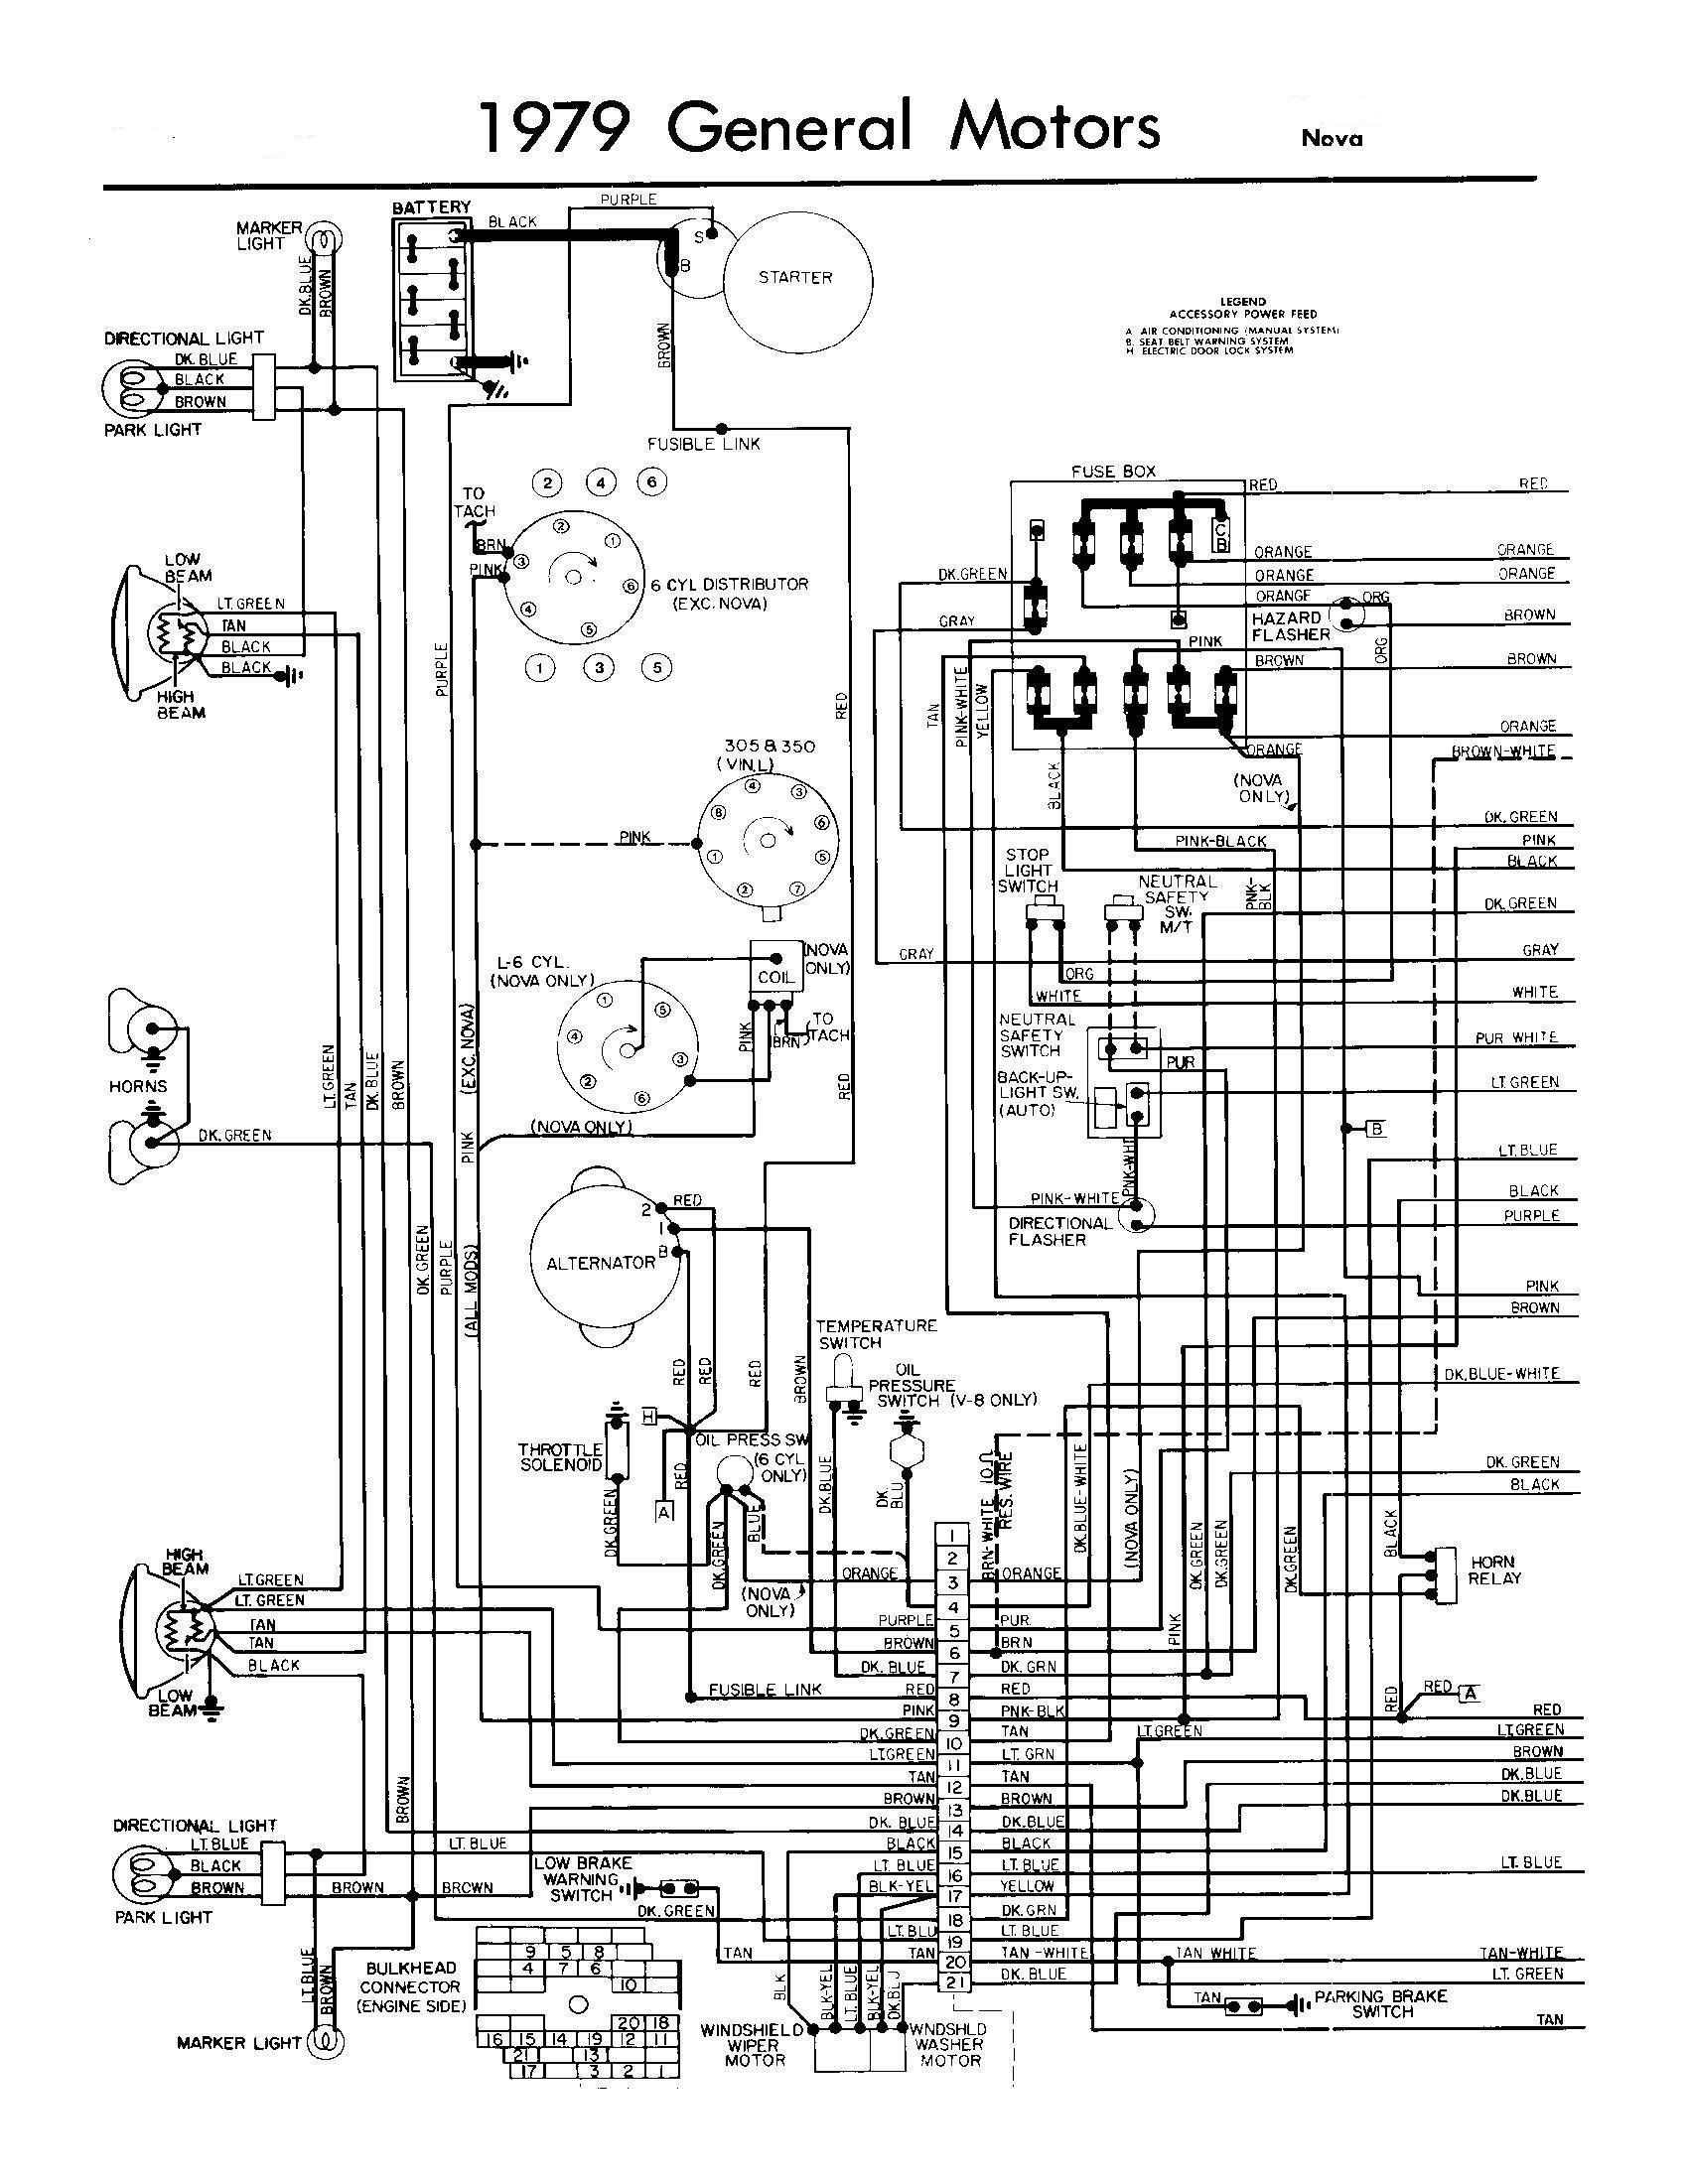 1956 buick century wiring diagram new wiring diagram for club car starter generator diagram  new wiring diagram for club car starter